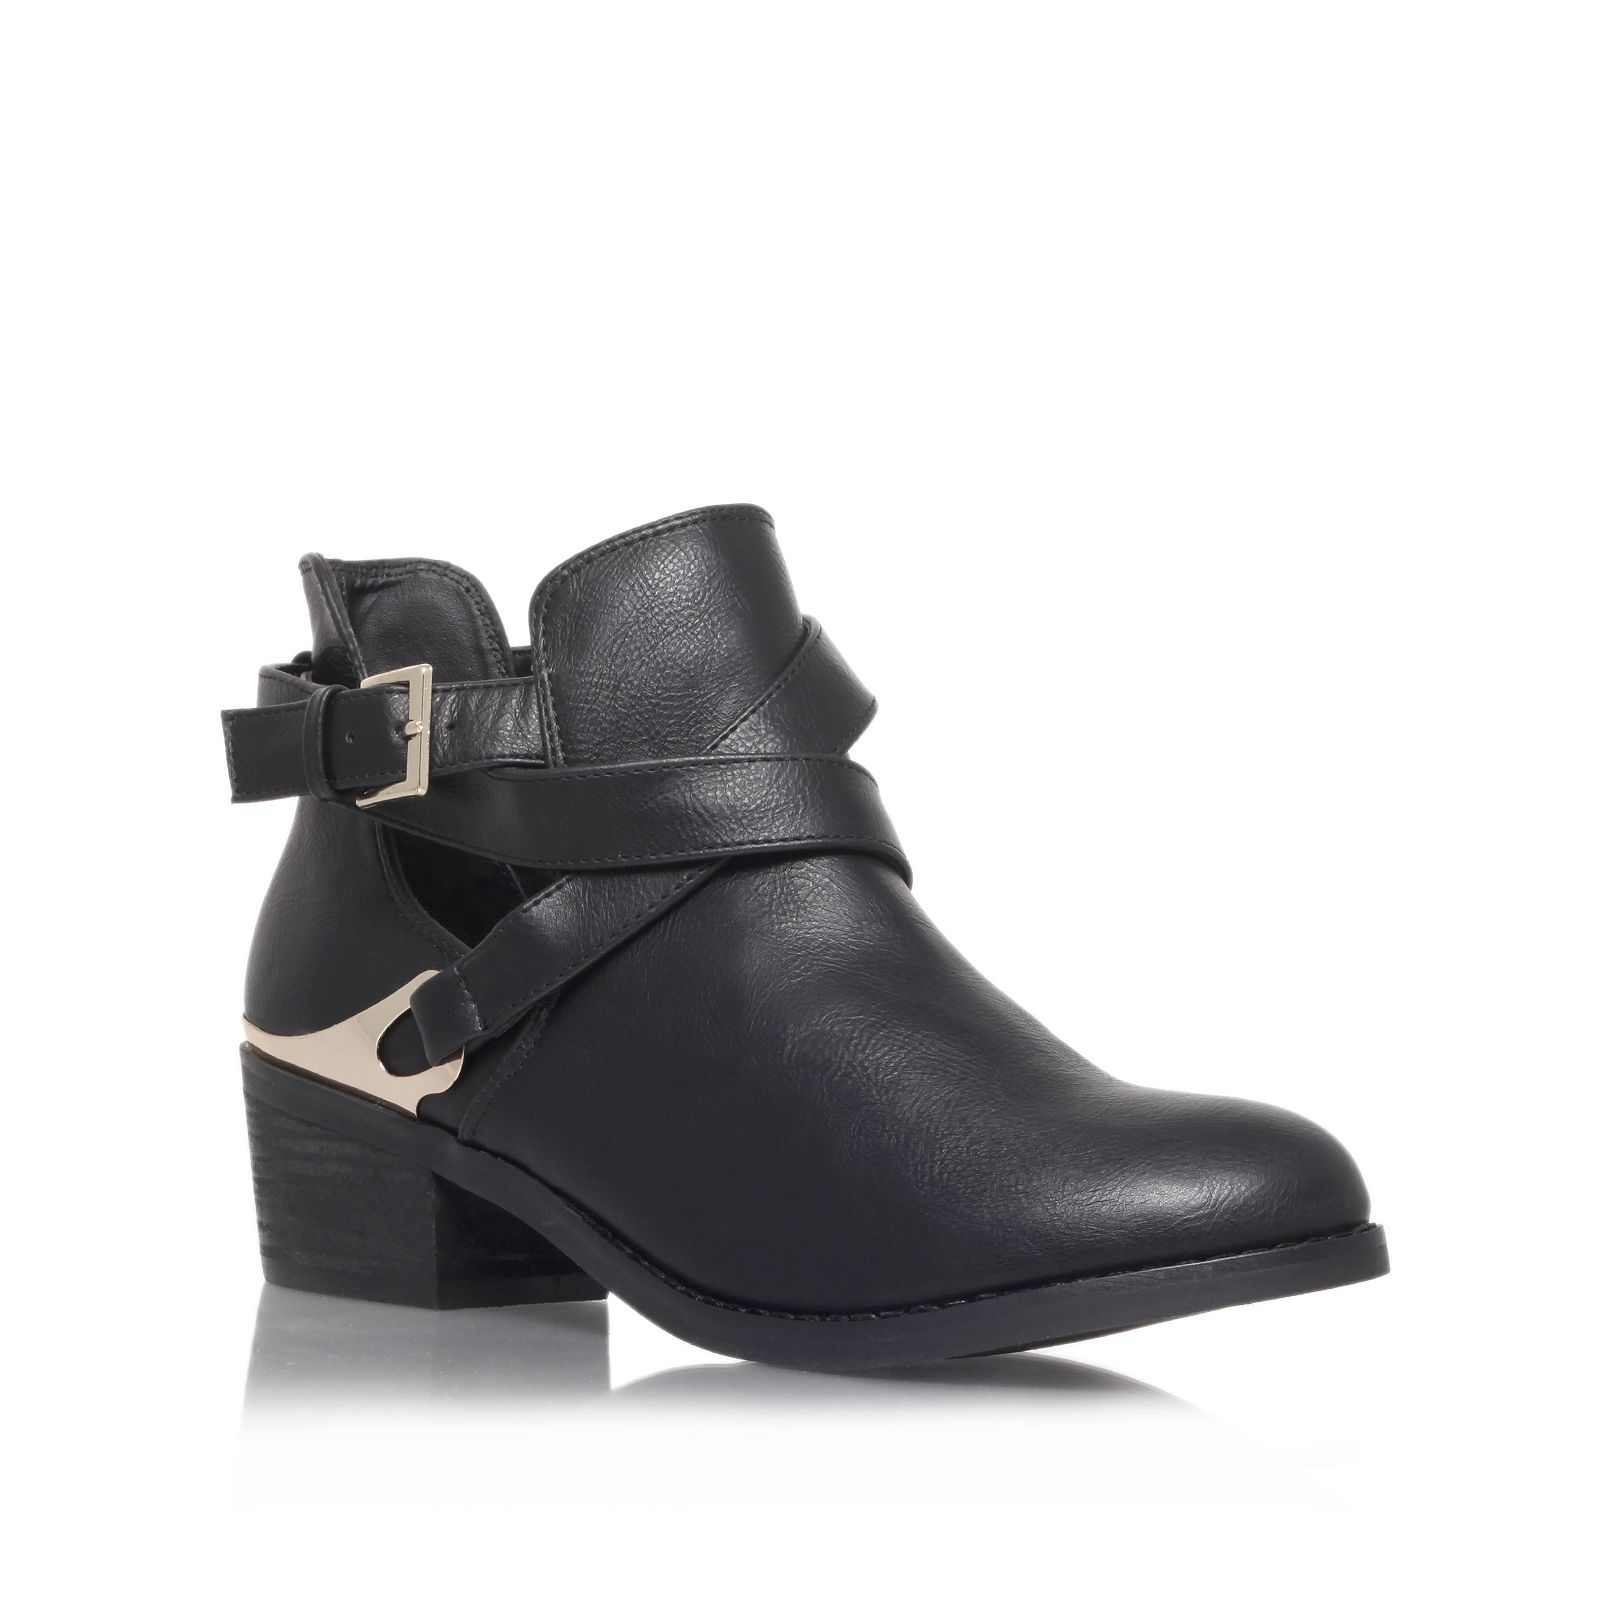 Emma low heel ankle boots